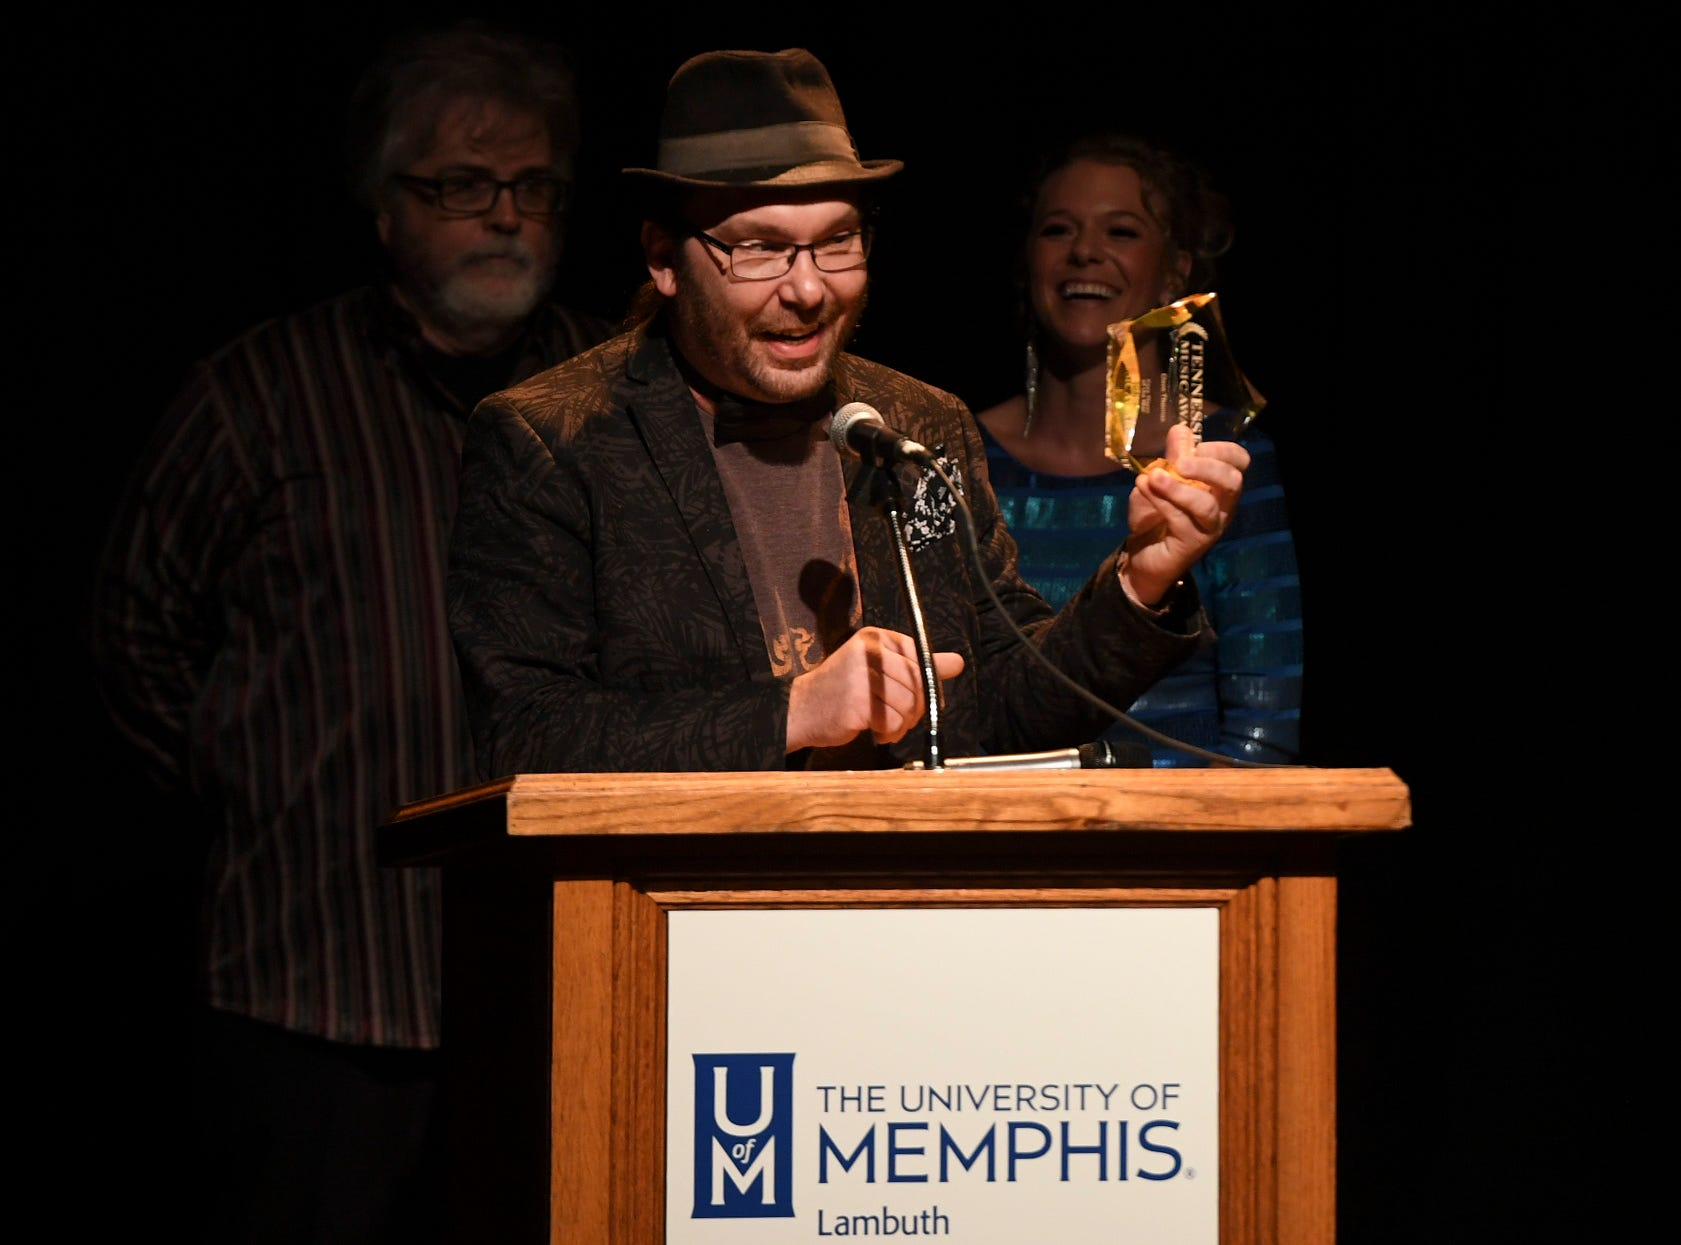 Dave Thomas gives thanks after receiving the award for Keyboard Player of the Year at The 2nd Annual Tennessee Music Awards, Monday, October 8, at University of Memphis Lambuth.